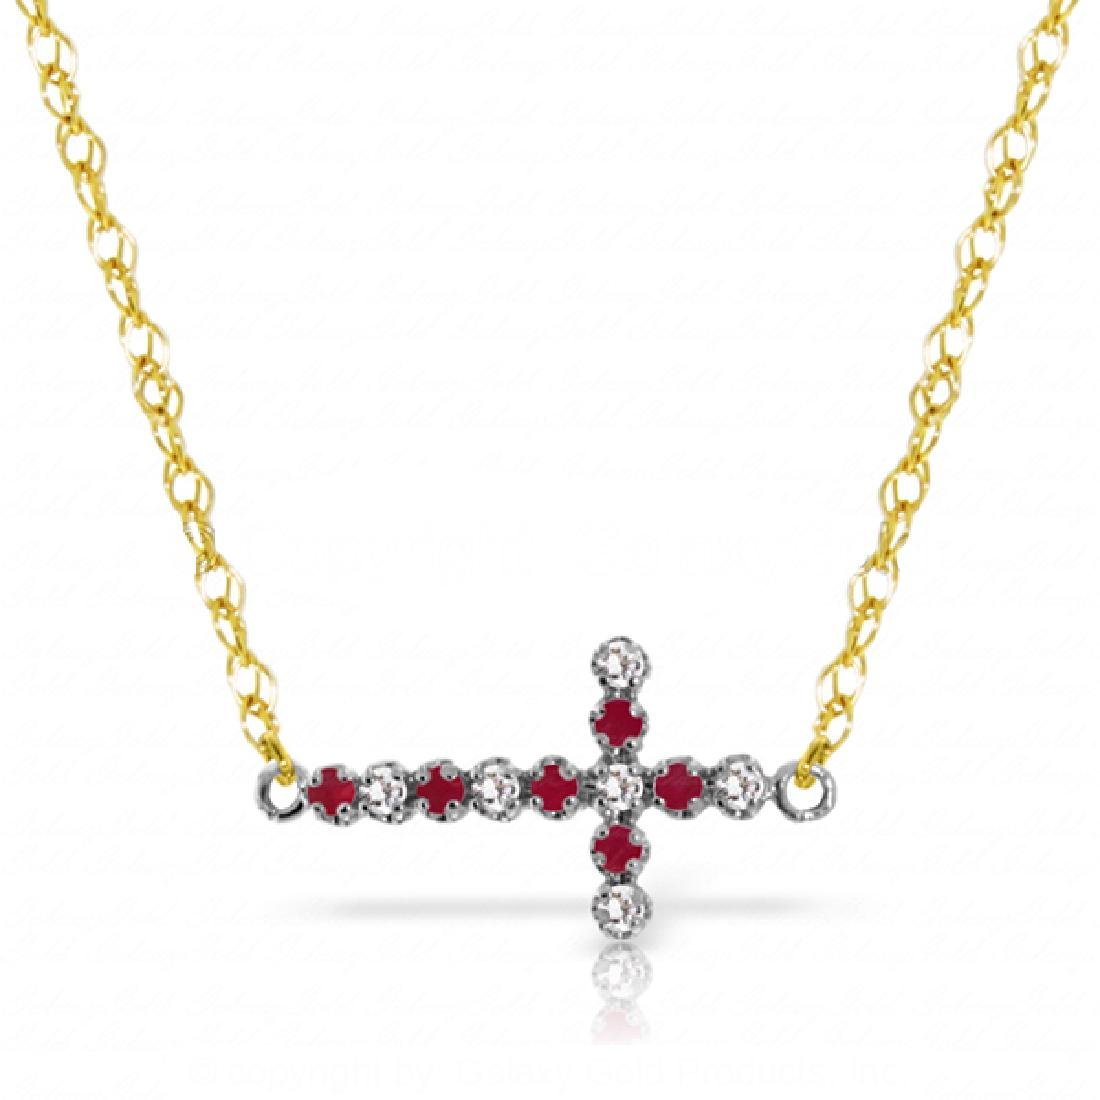 Genuine 0.24 ctw Ruby & Diamond Necklace Jewelry 14KT